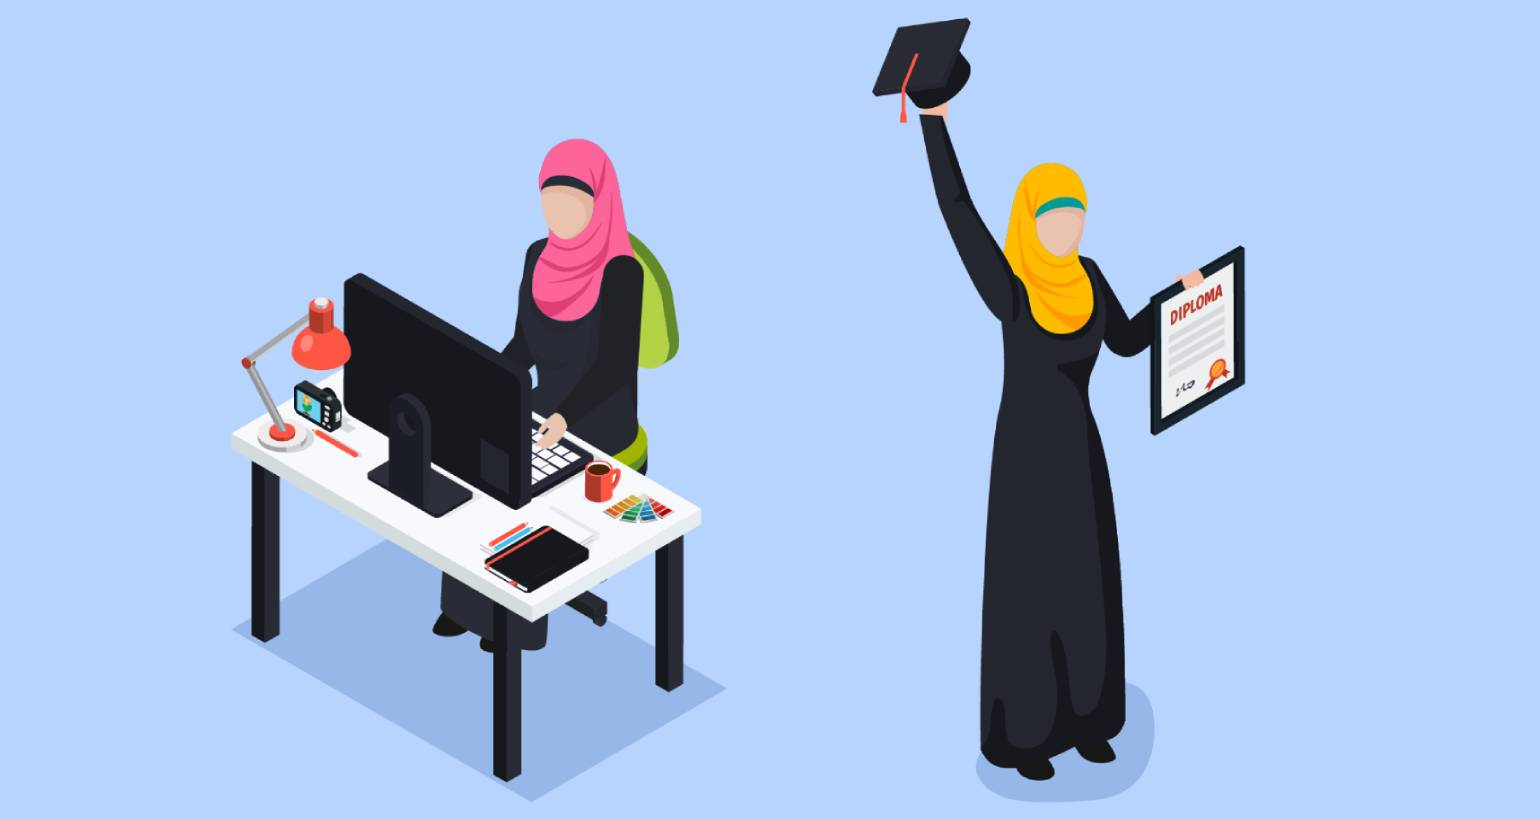 what to do for learning quran online